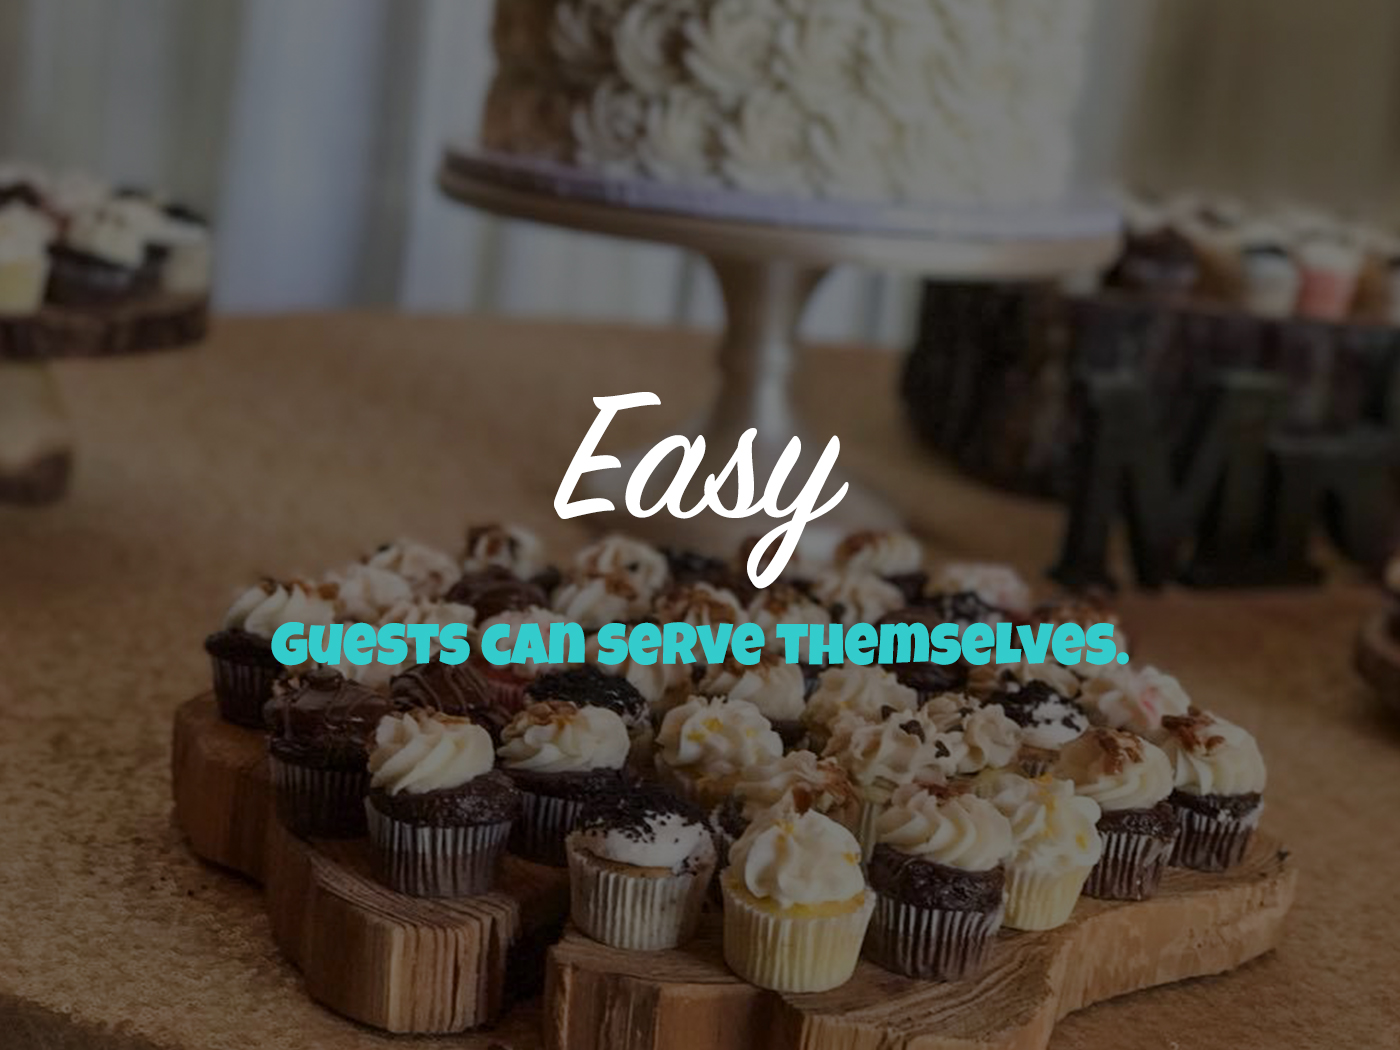 Easy, guests can serve themselves